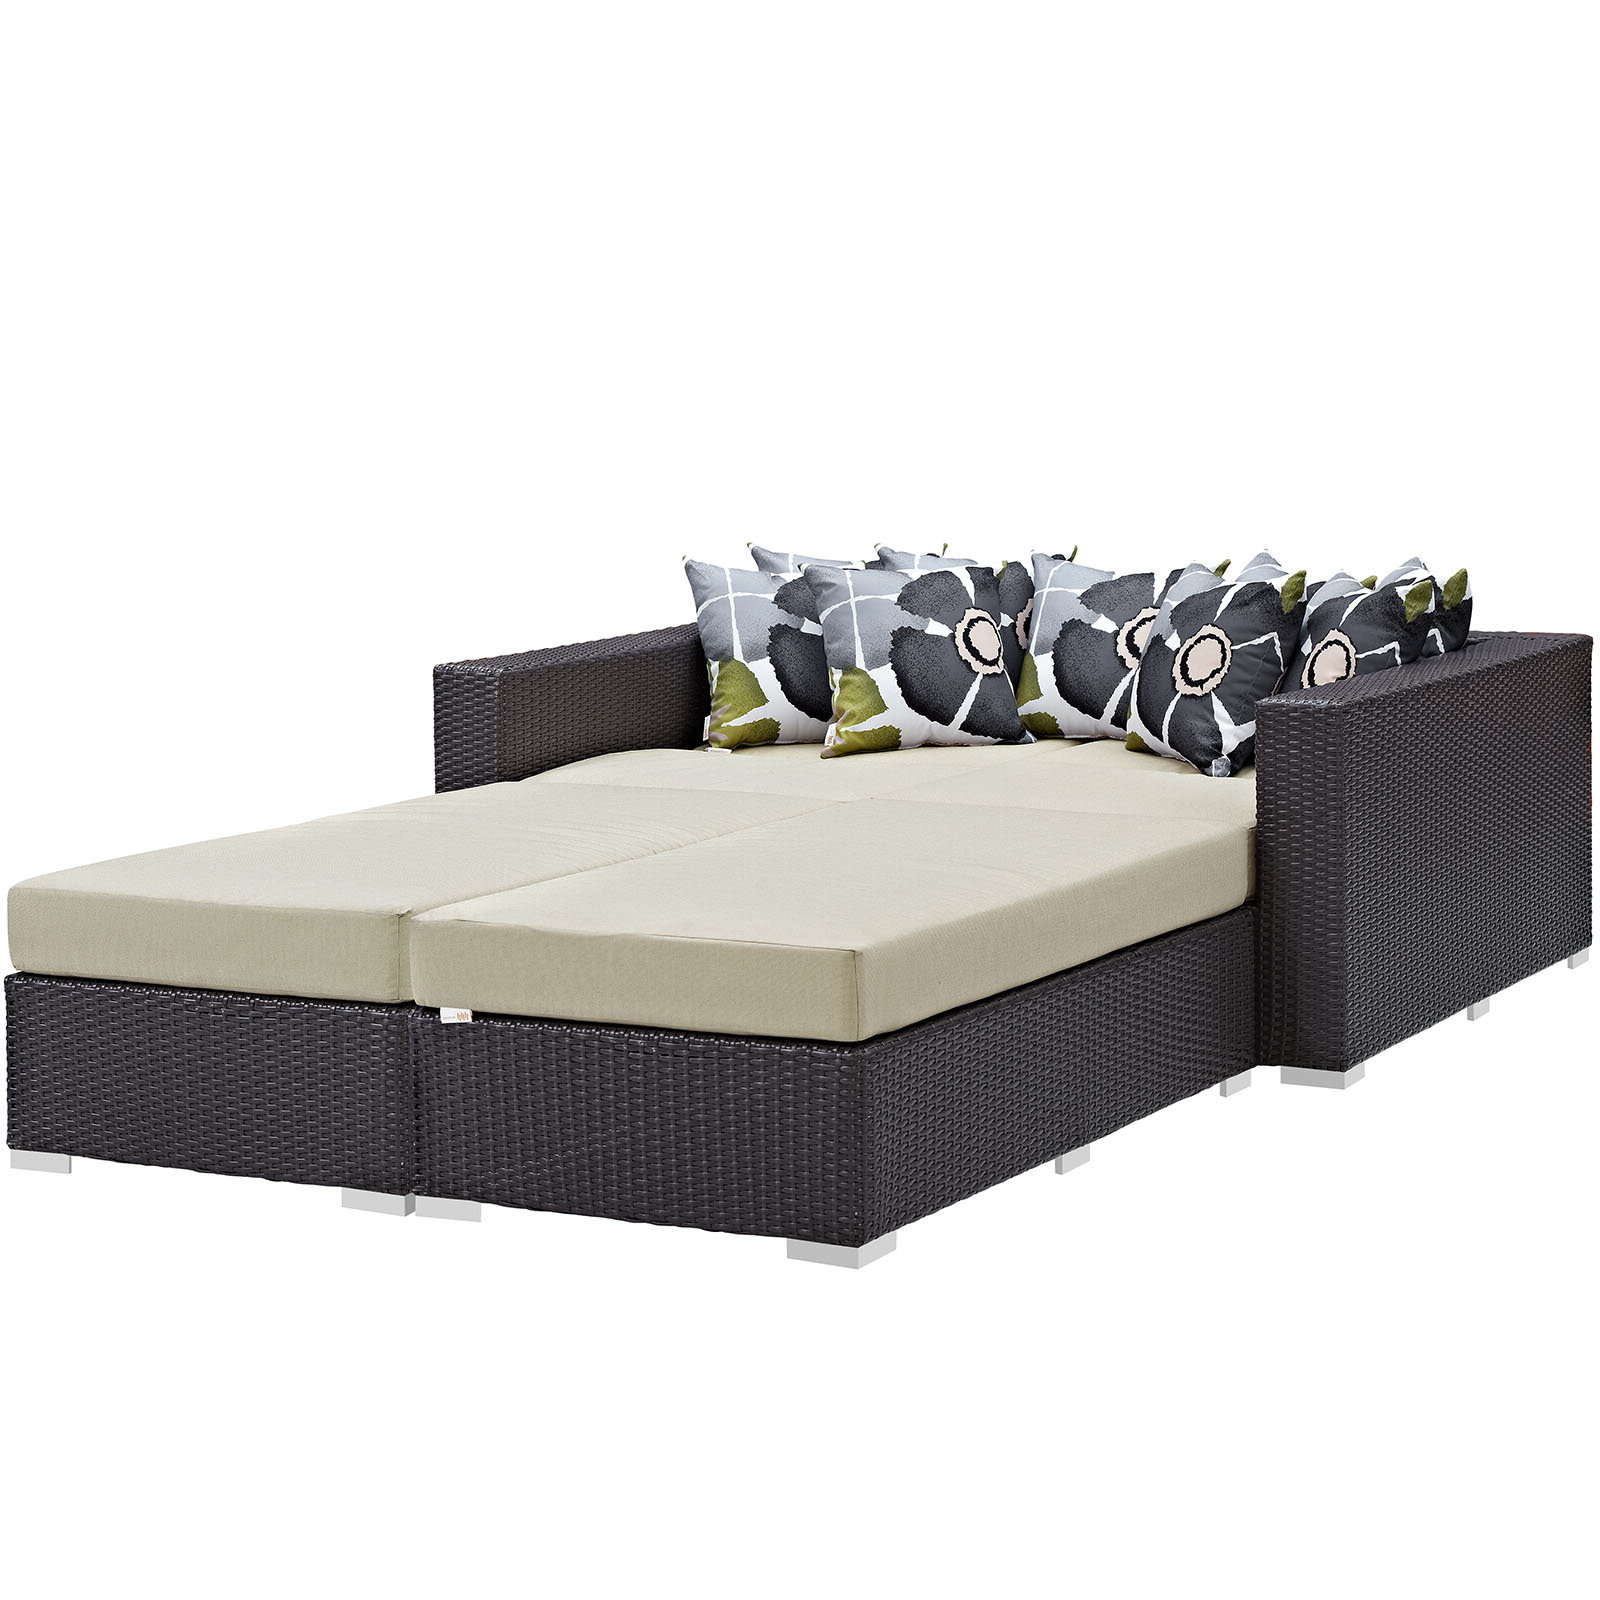 Brentwood 4 Piece Patio Daybed With Cushions Regarding Trendy Naperville Patio Daybeds With Cushion (View 22 of 25)